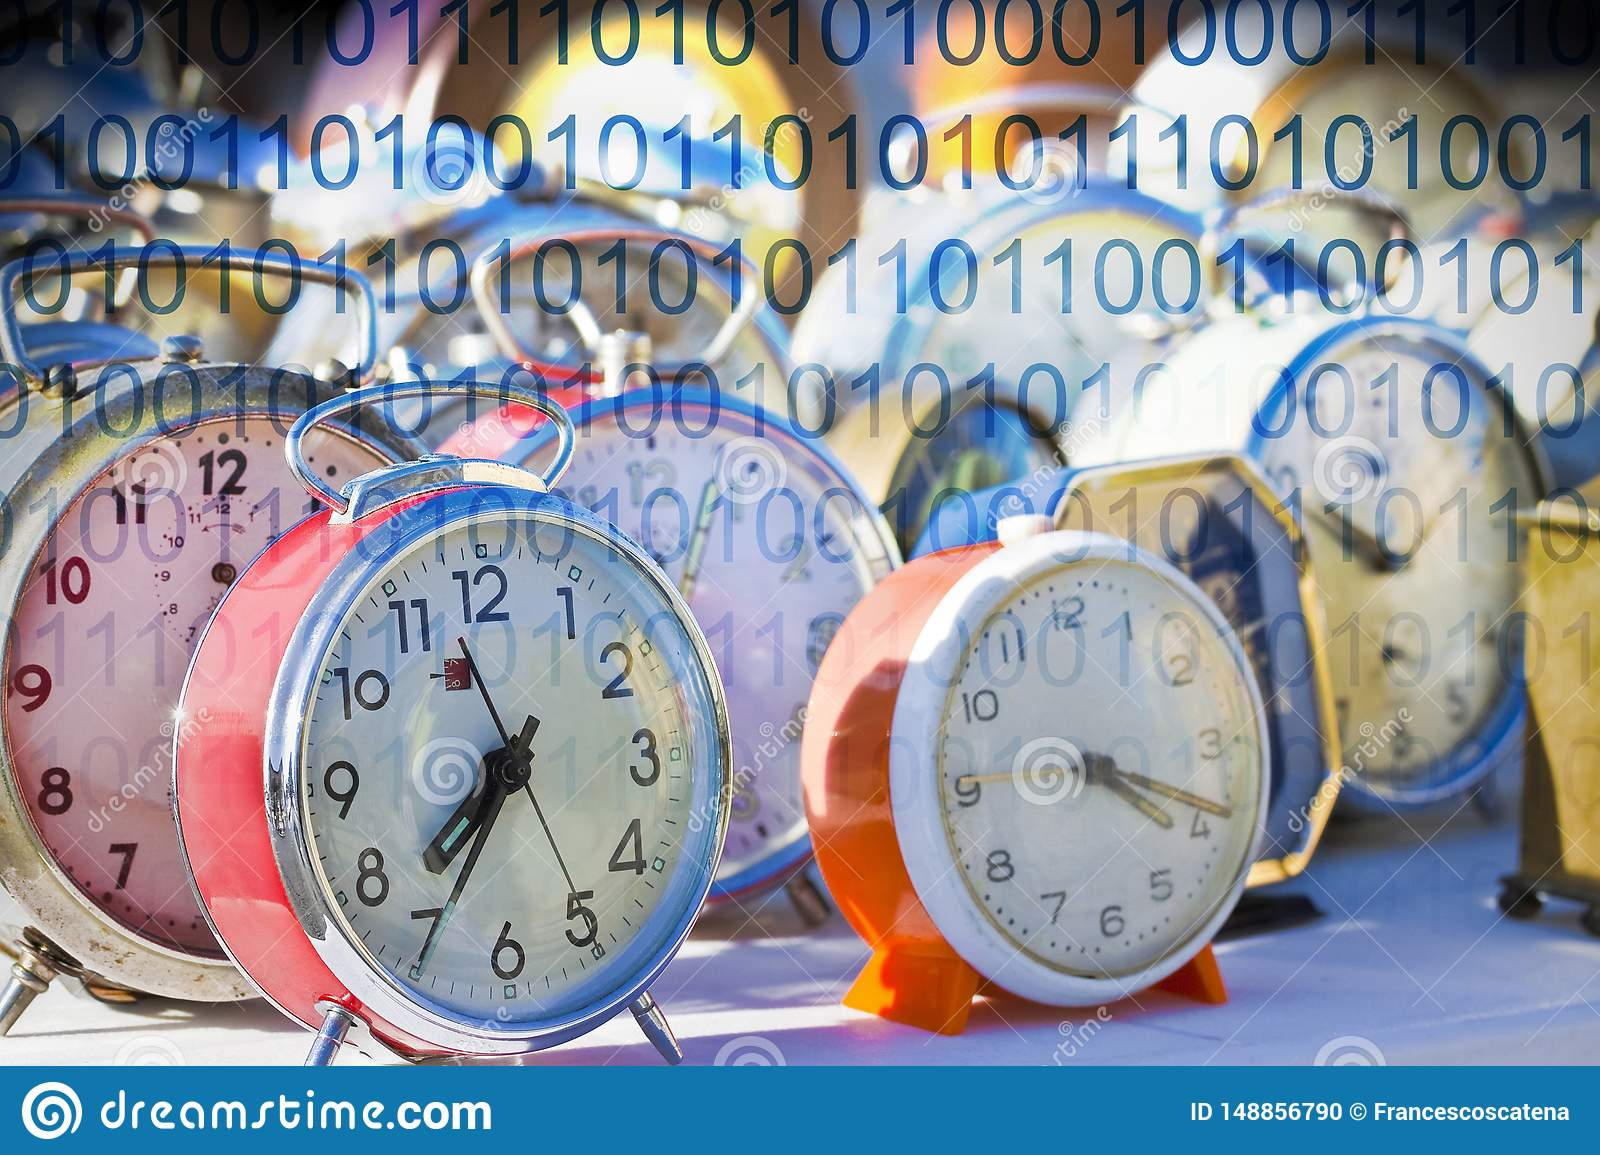 It`s time to protect your data - Concept image with old colored metal table clocks with binary code